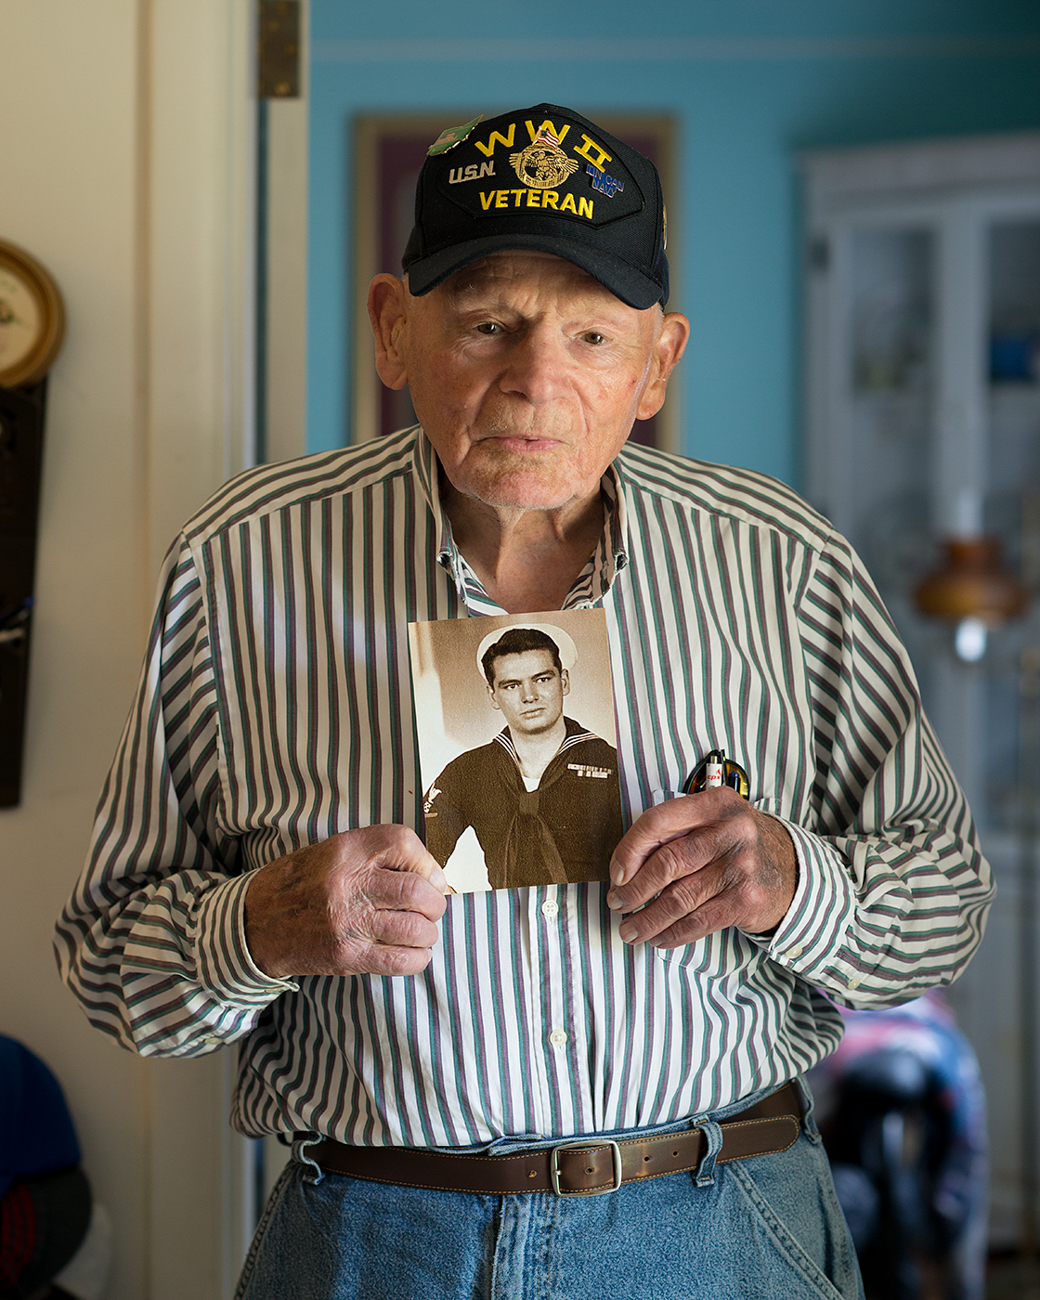 WILLIAM HARGIS / He joined the Navy before the attack on Pearl Harbor and saw a ton of action on the seas, including the wrath of two kamikaze pilots. / Read more of his story at facebook.com/theygaveitall. / Image: Patrick McCue // Published: 1.29.17